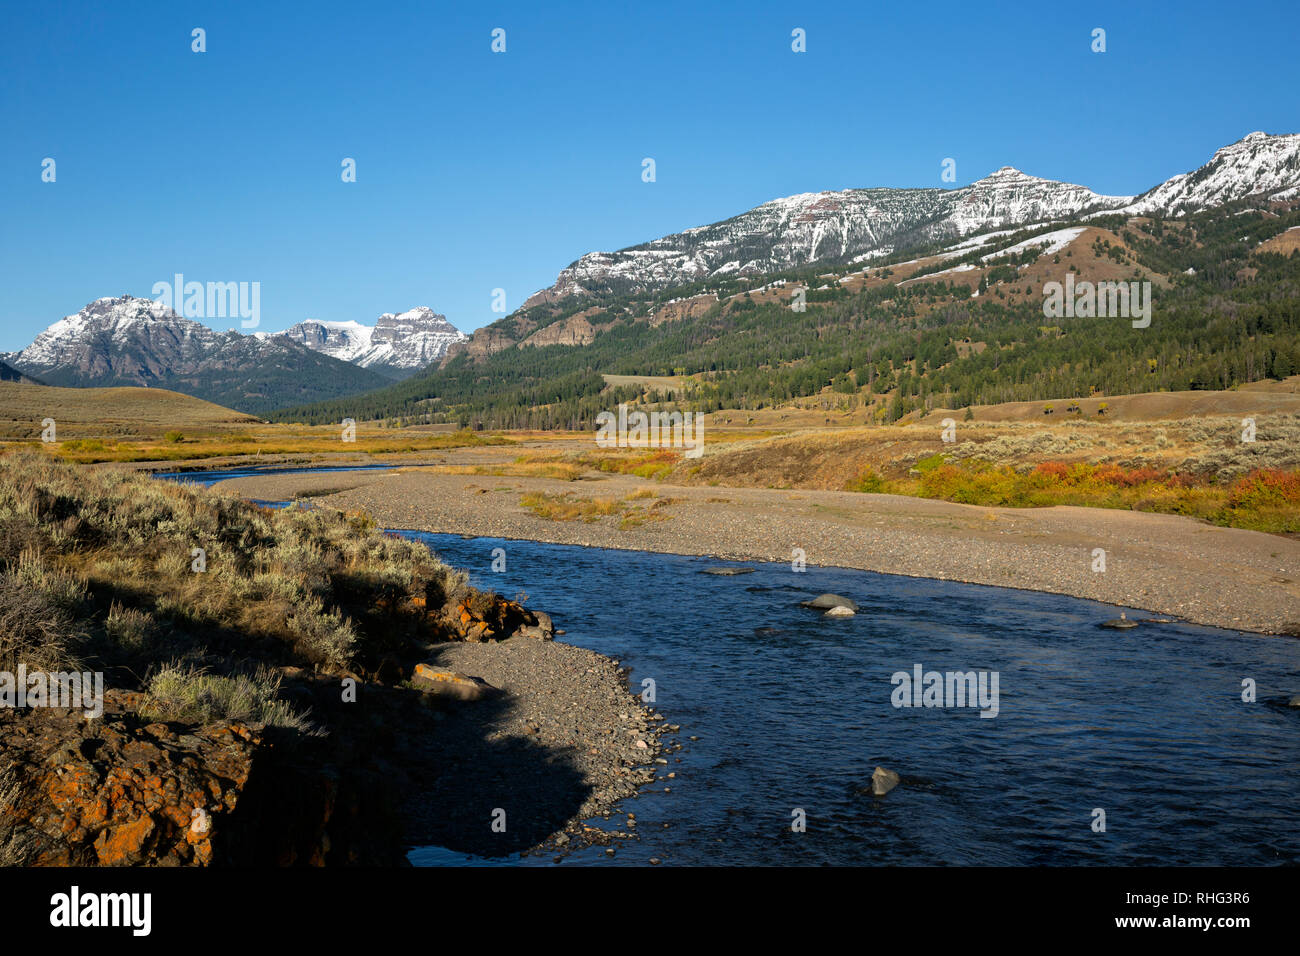 WY03093-00...WYOMING - Soda Butte Creek in the Lamar Valley area of Yellowstone National Park. - Stock Image